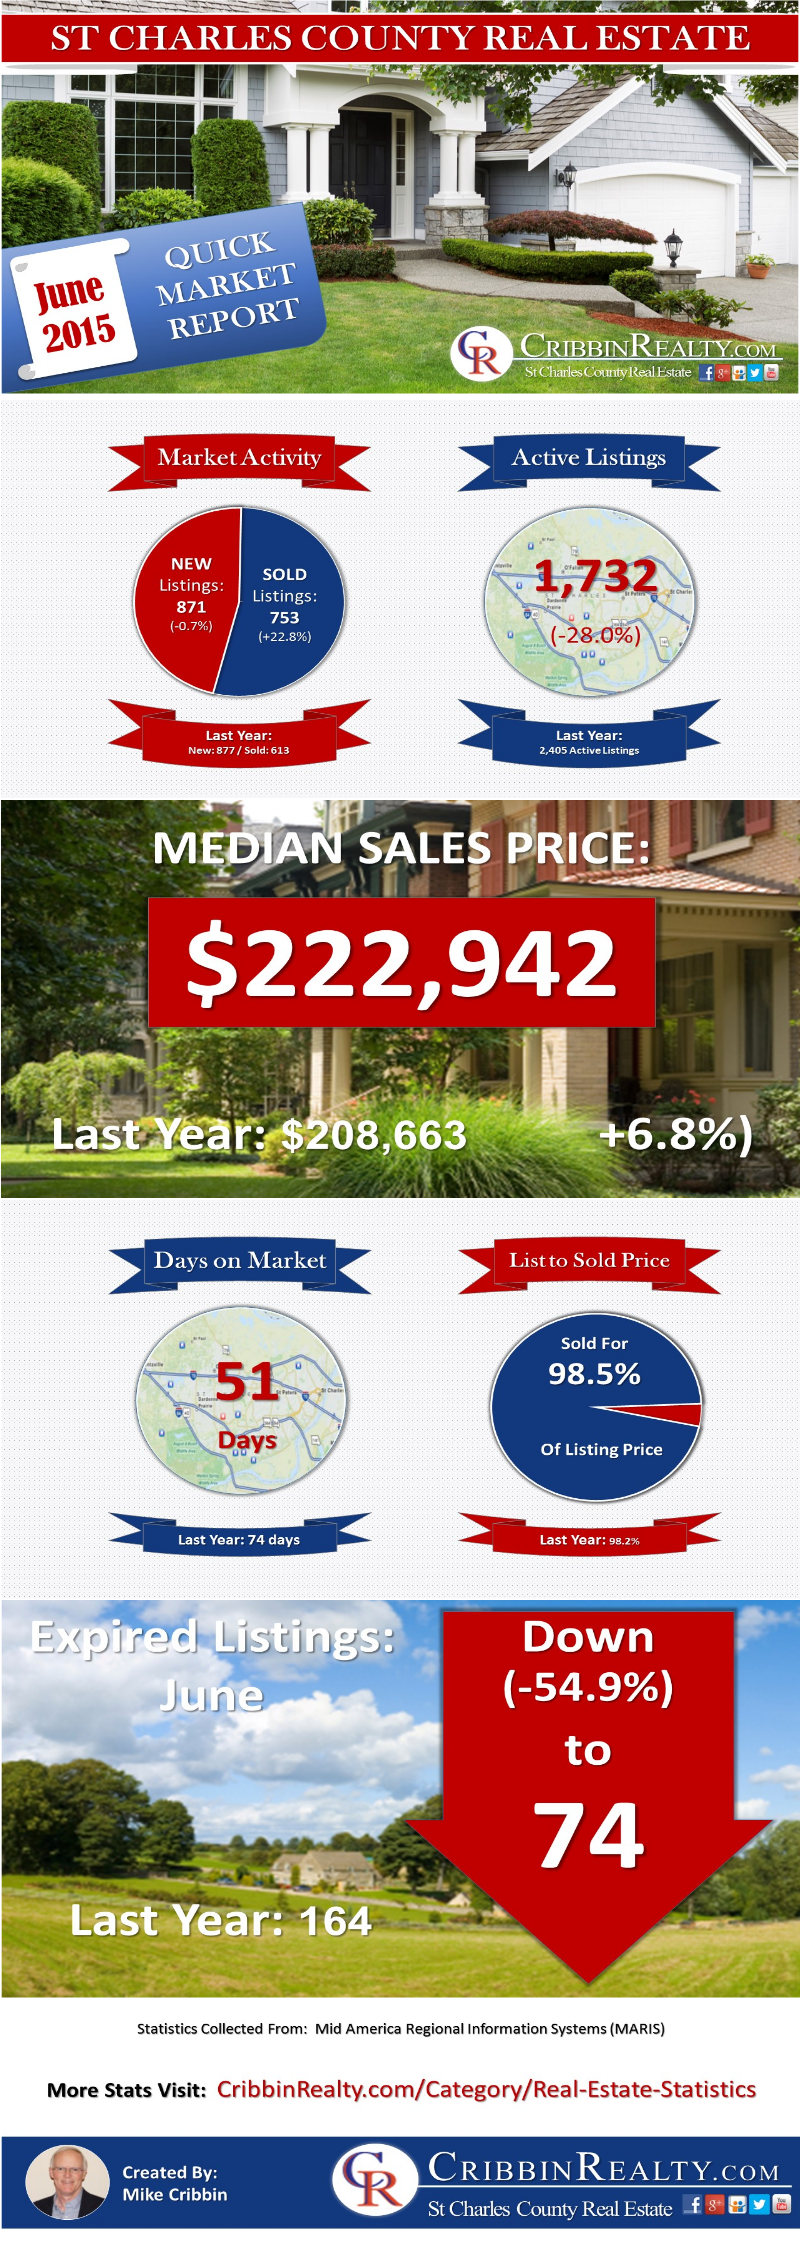 June 2015 Real Estate Stats for St Charles County